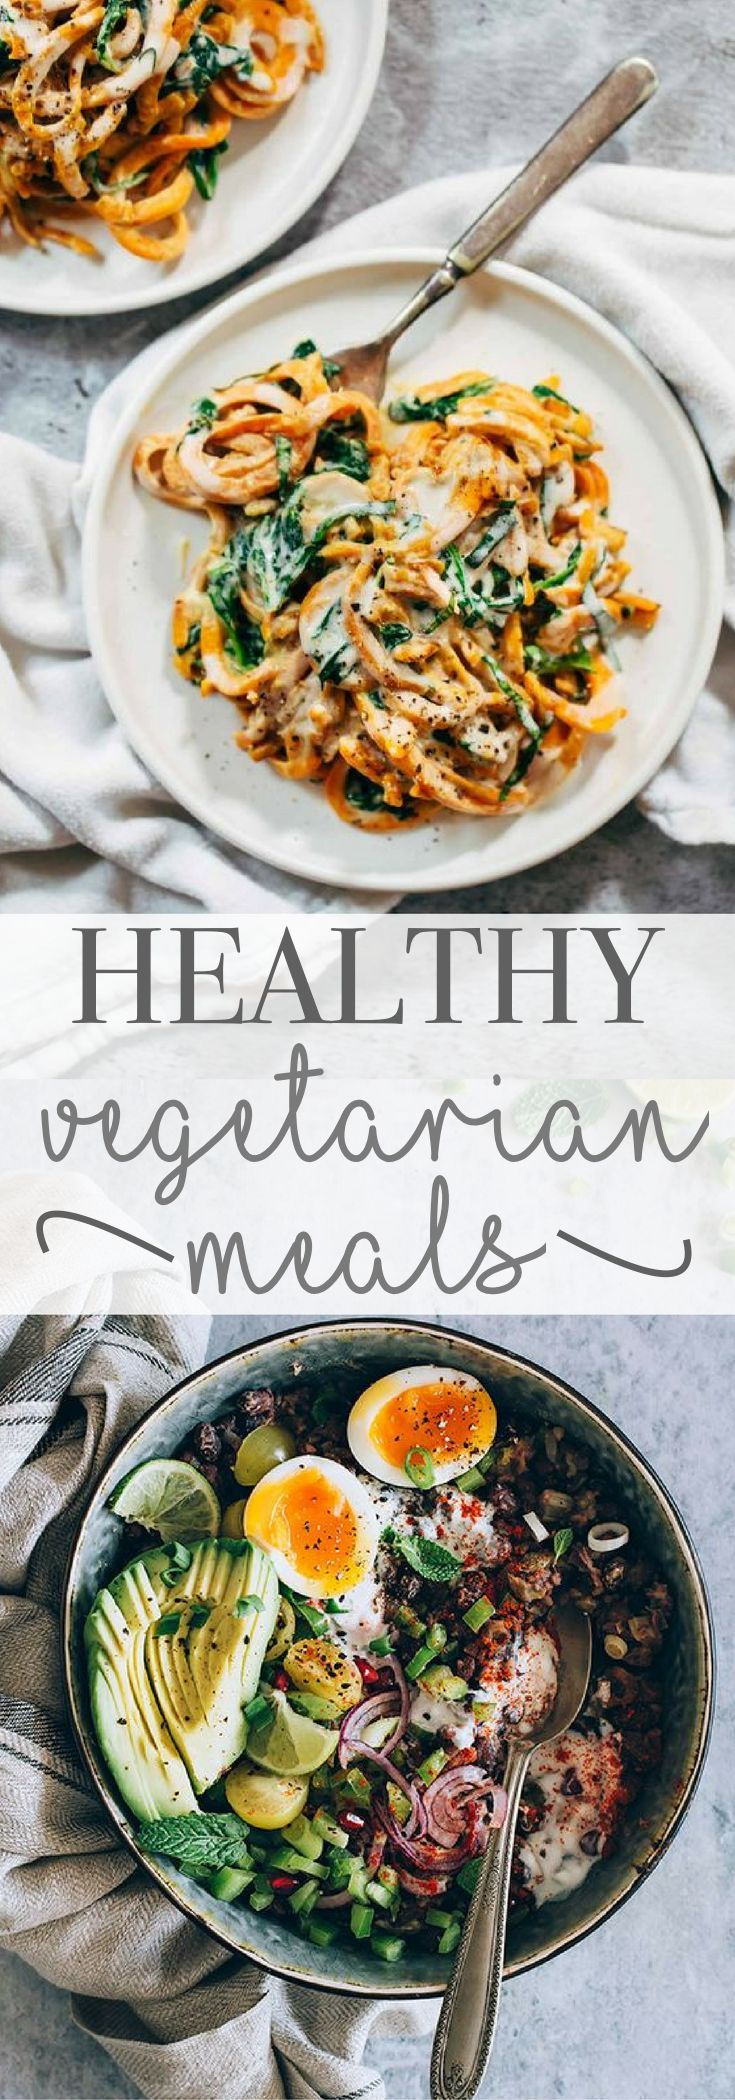 Healthy Vegetarian Recipes - Dinner ideas - Recipes - Healthy recipes - healthy food - High protein - Delicious recipes Tap the link now to find the hottest products for your kitchen!